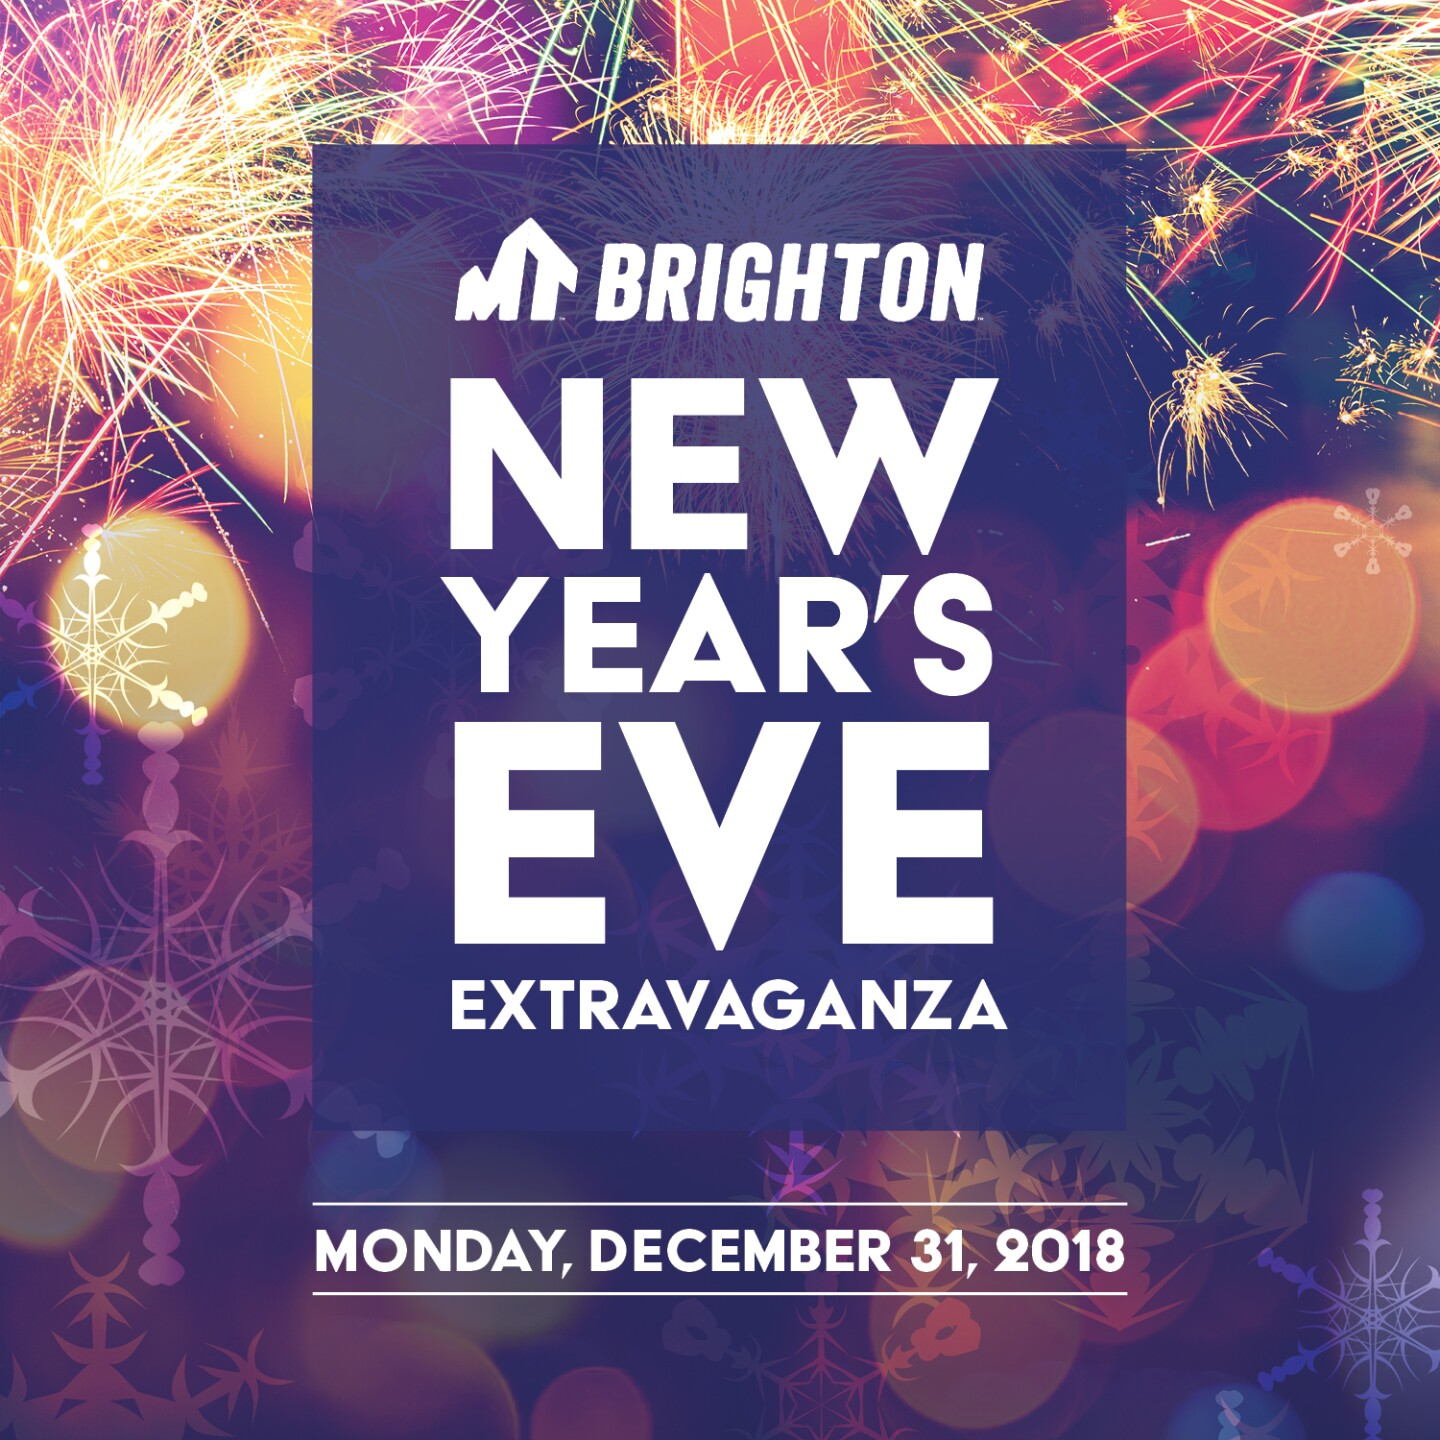 New Year's Eve at Mt. Brighton